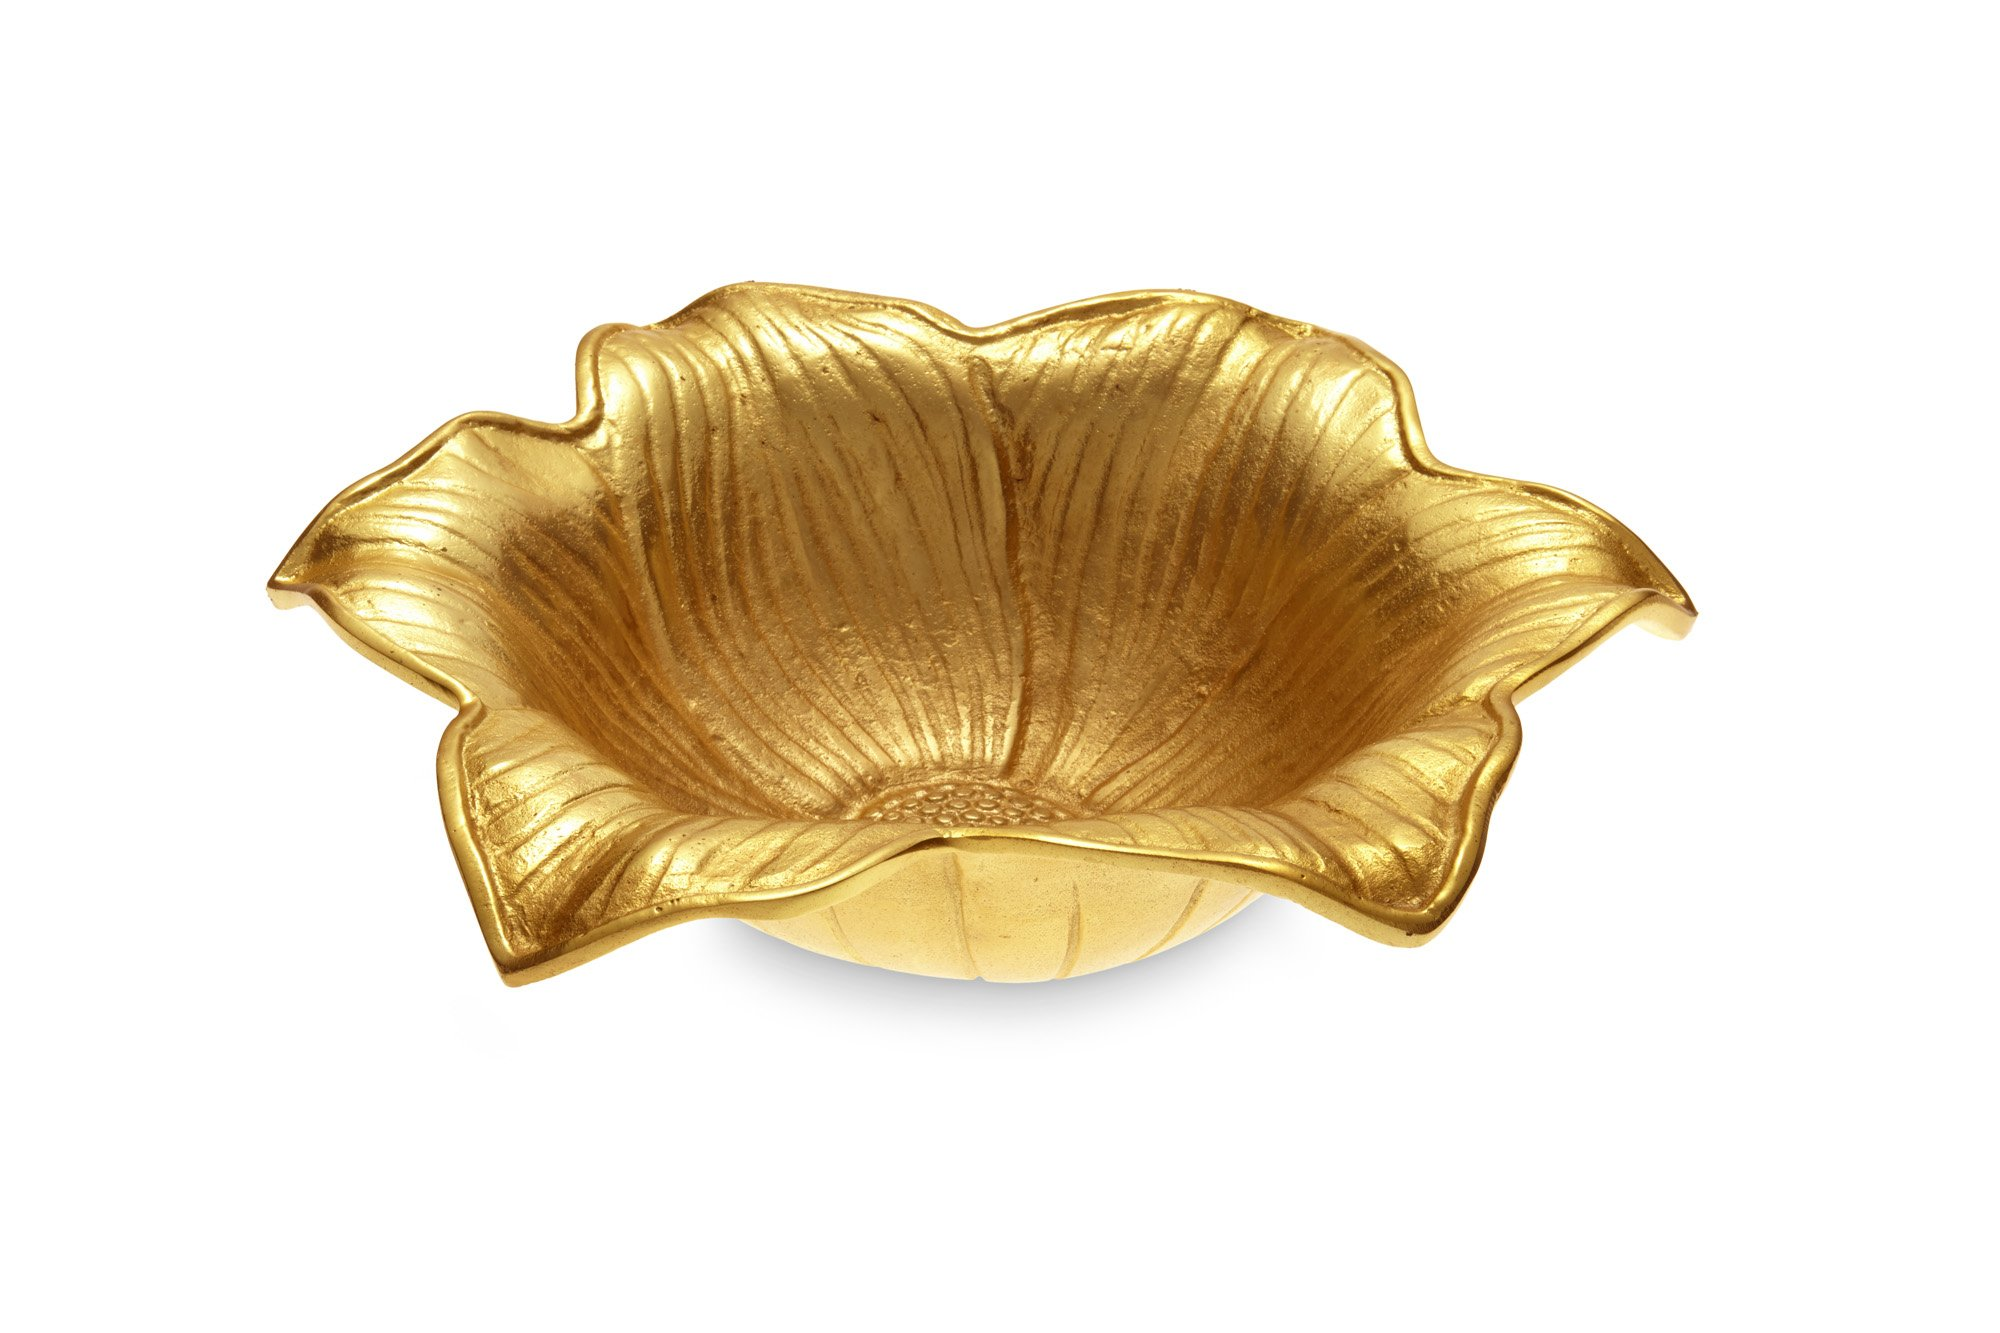 Julia Knight Lily Bowl, 15-Inch, Gold, Yellow by Julia Knight